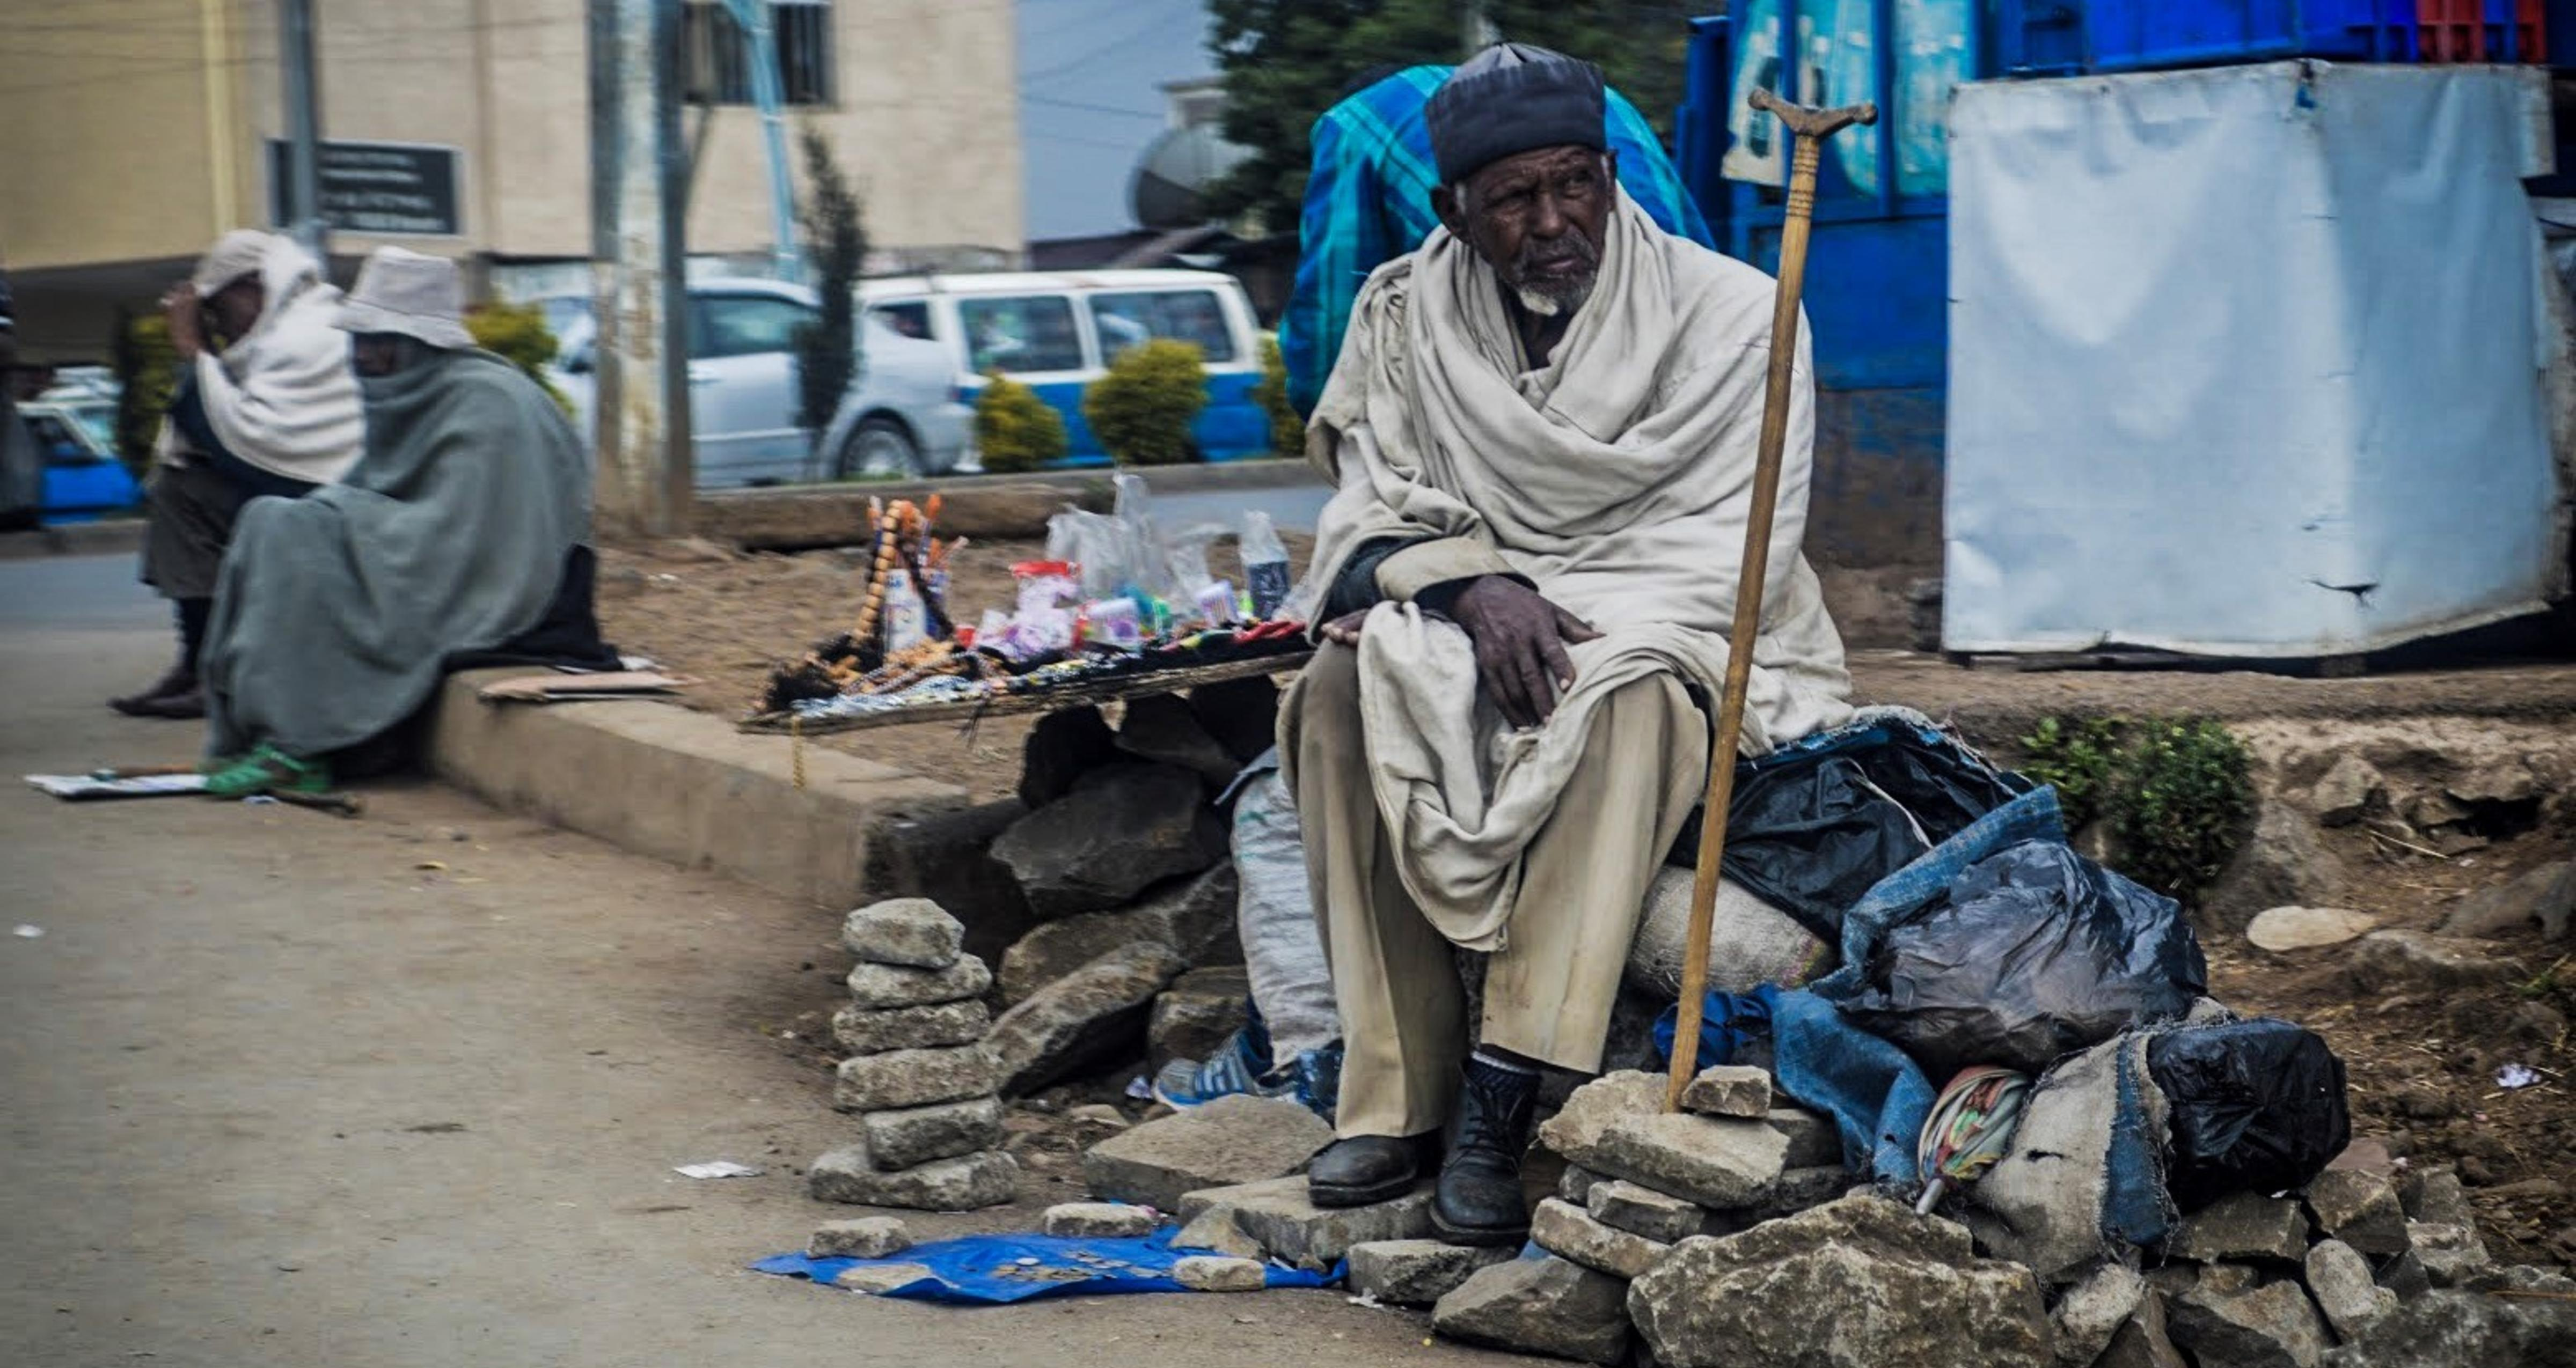 man on the street, Addis Ababa, Ethiopia